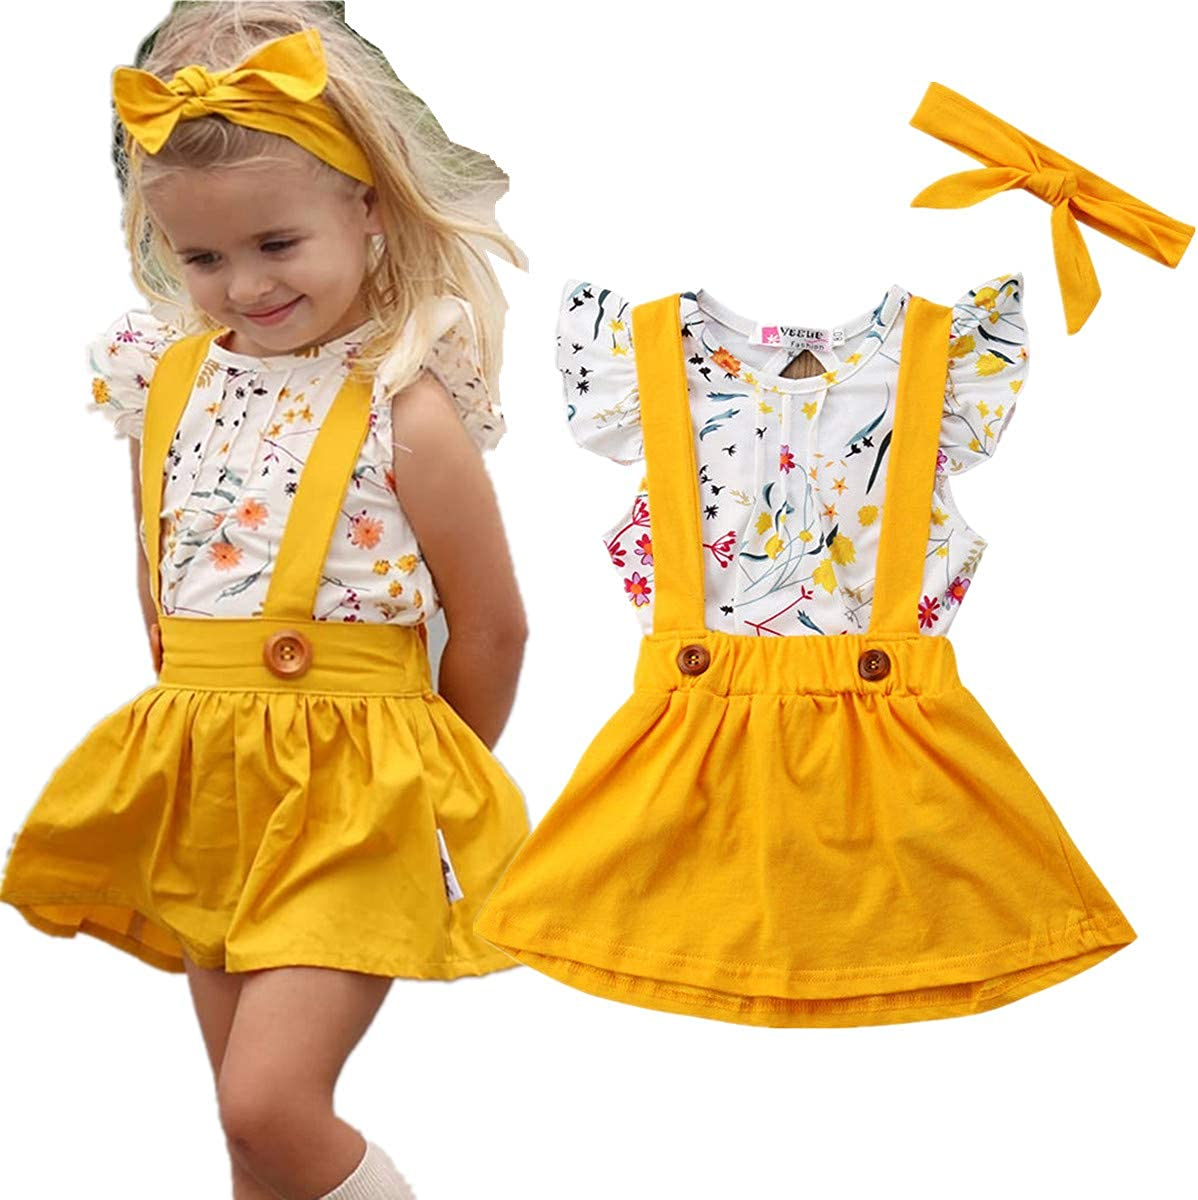 XIAOXUEG Baby Girl Clothes Gifts My First Valentines Day Toddler Girl Outfit Long Sleeve T Shirt Suspender Skirt